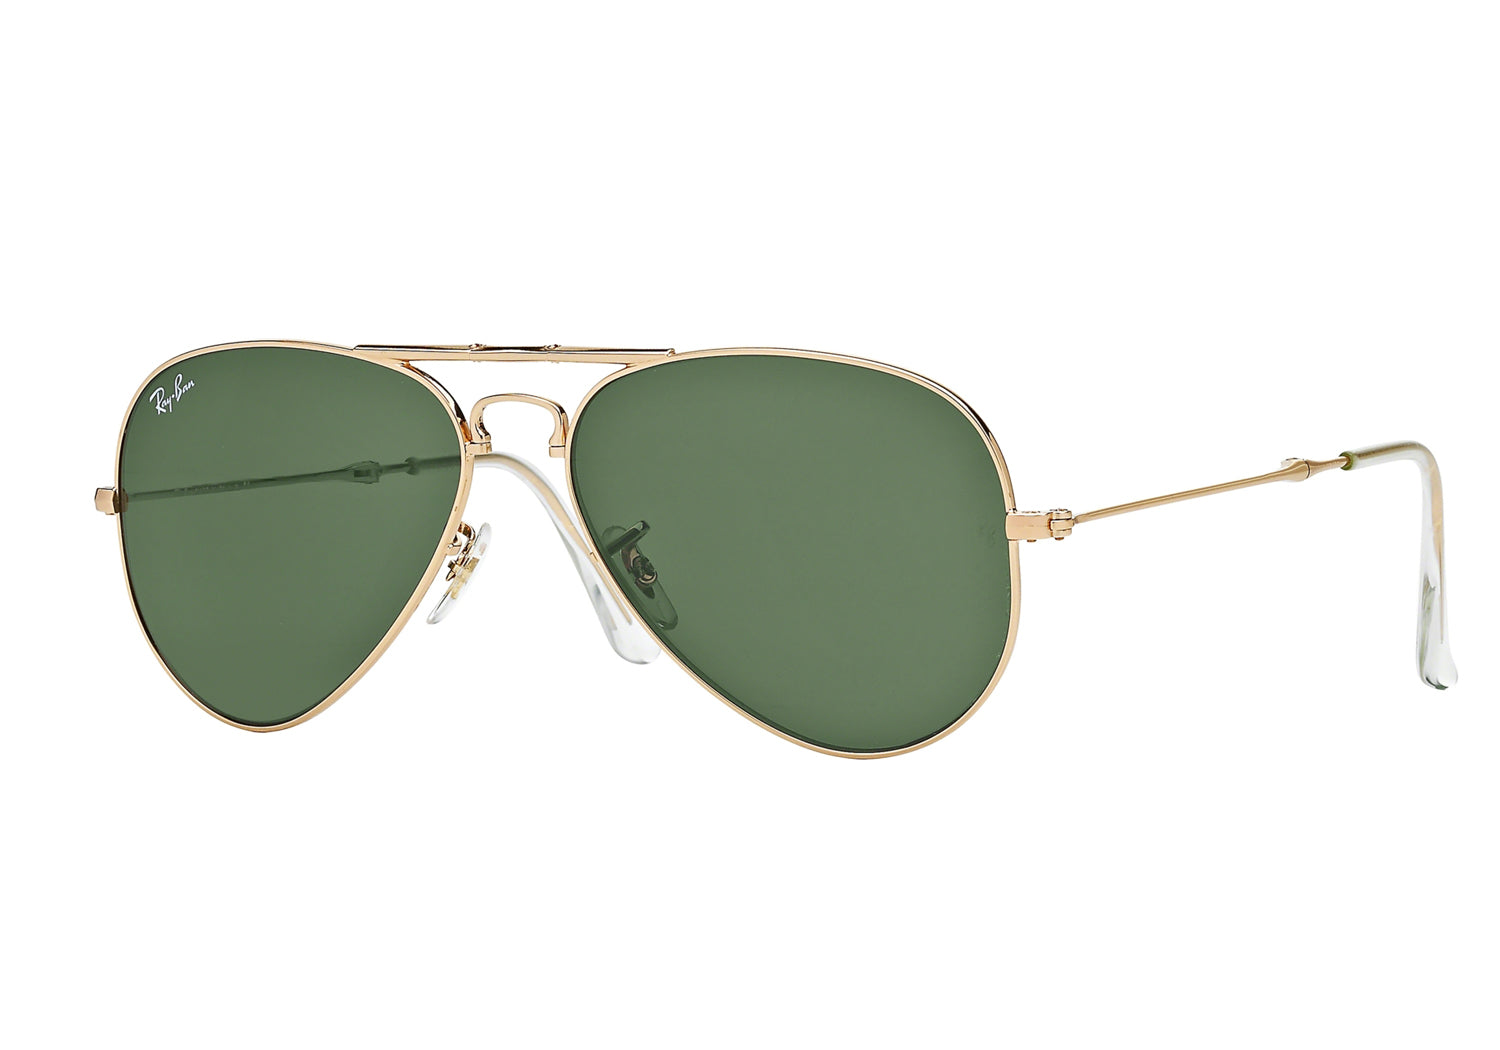 Ray-ban RB3479 Folding Aviator 58mm Prescription Sunglasses